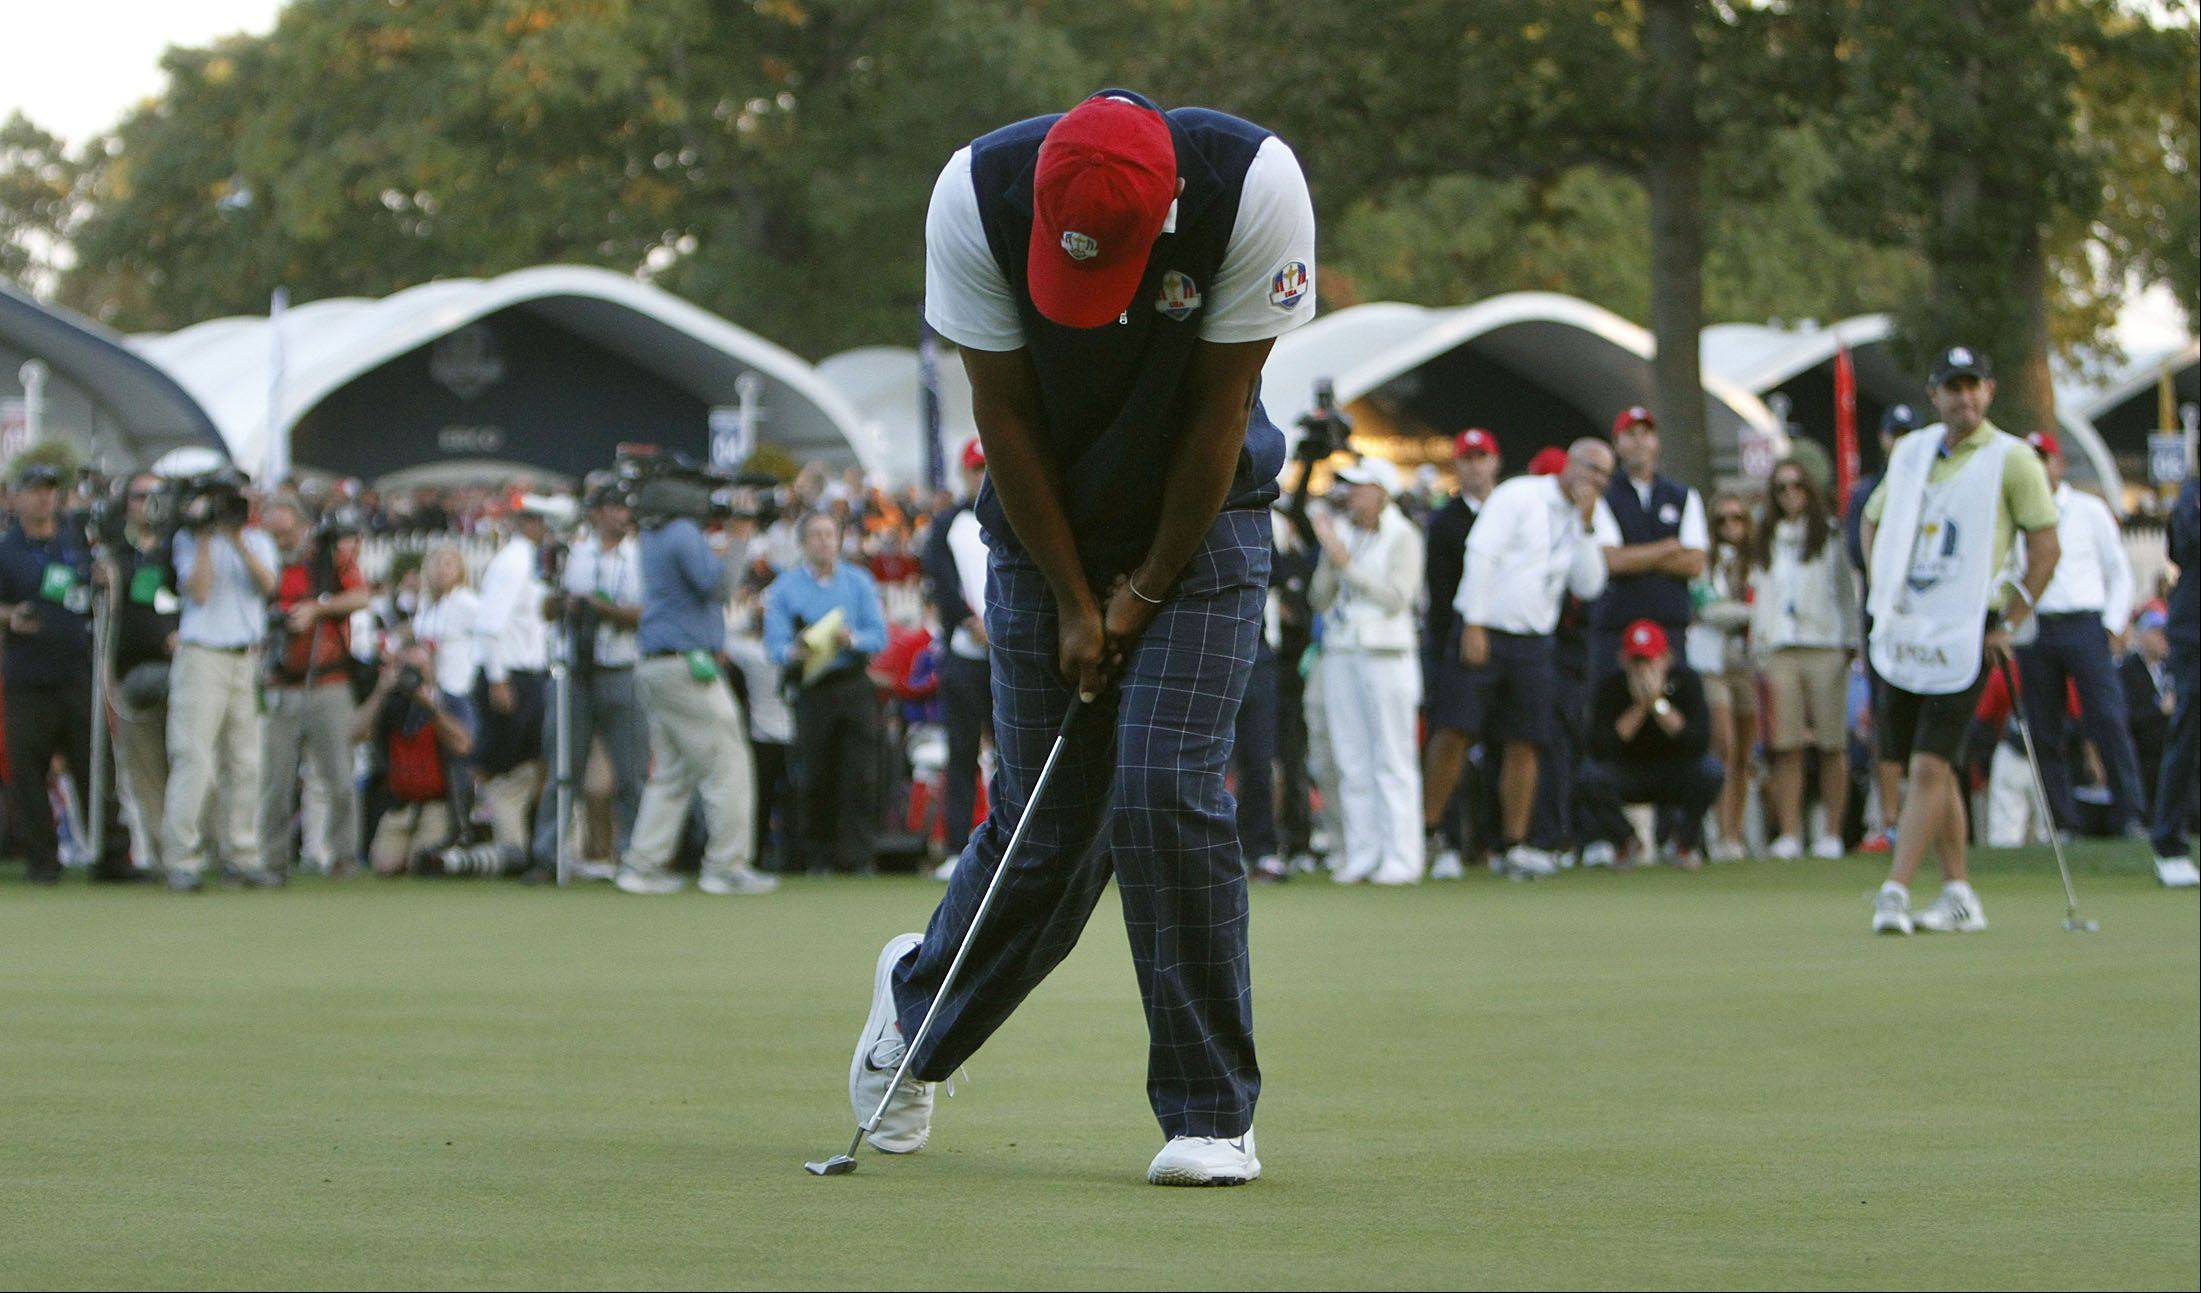 Tiger Woods collapses after missing a birdie putt on 18 during fourball matches Friday at Medinah Country Club.